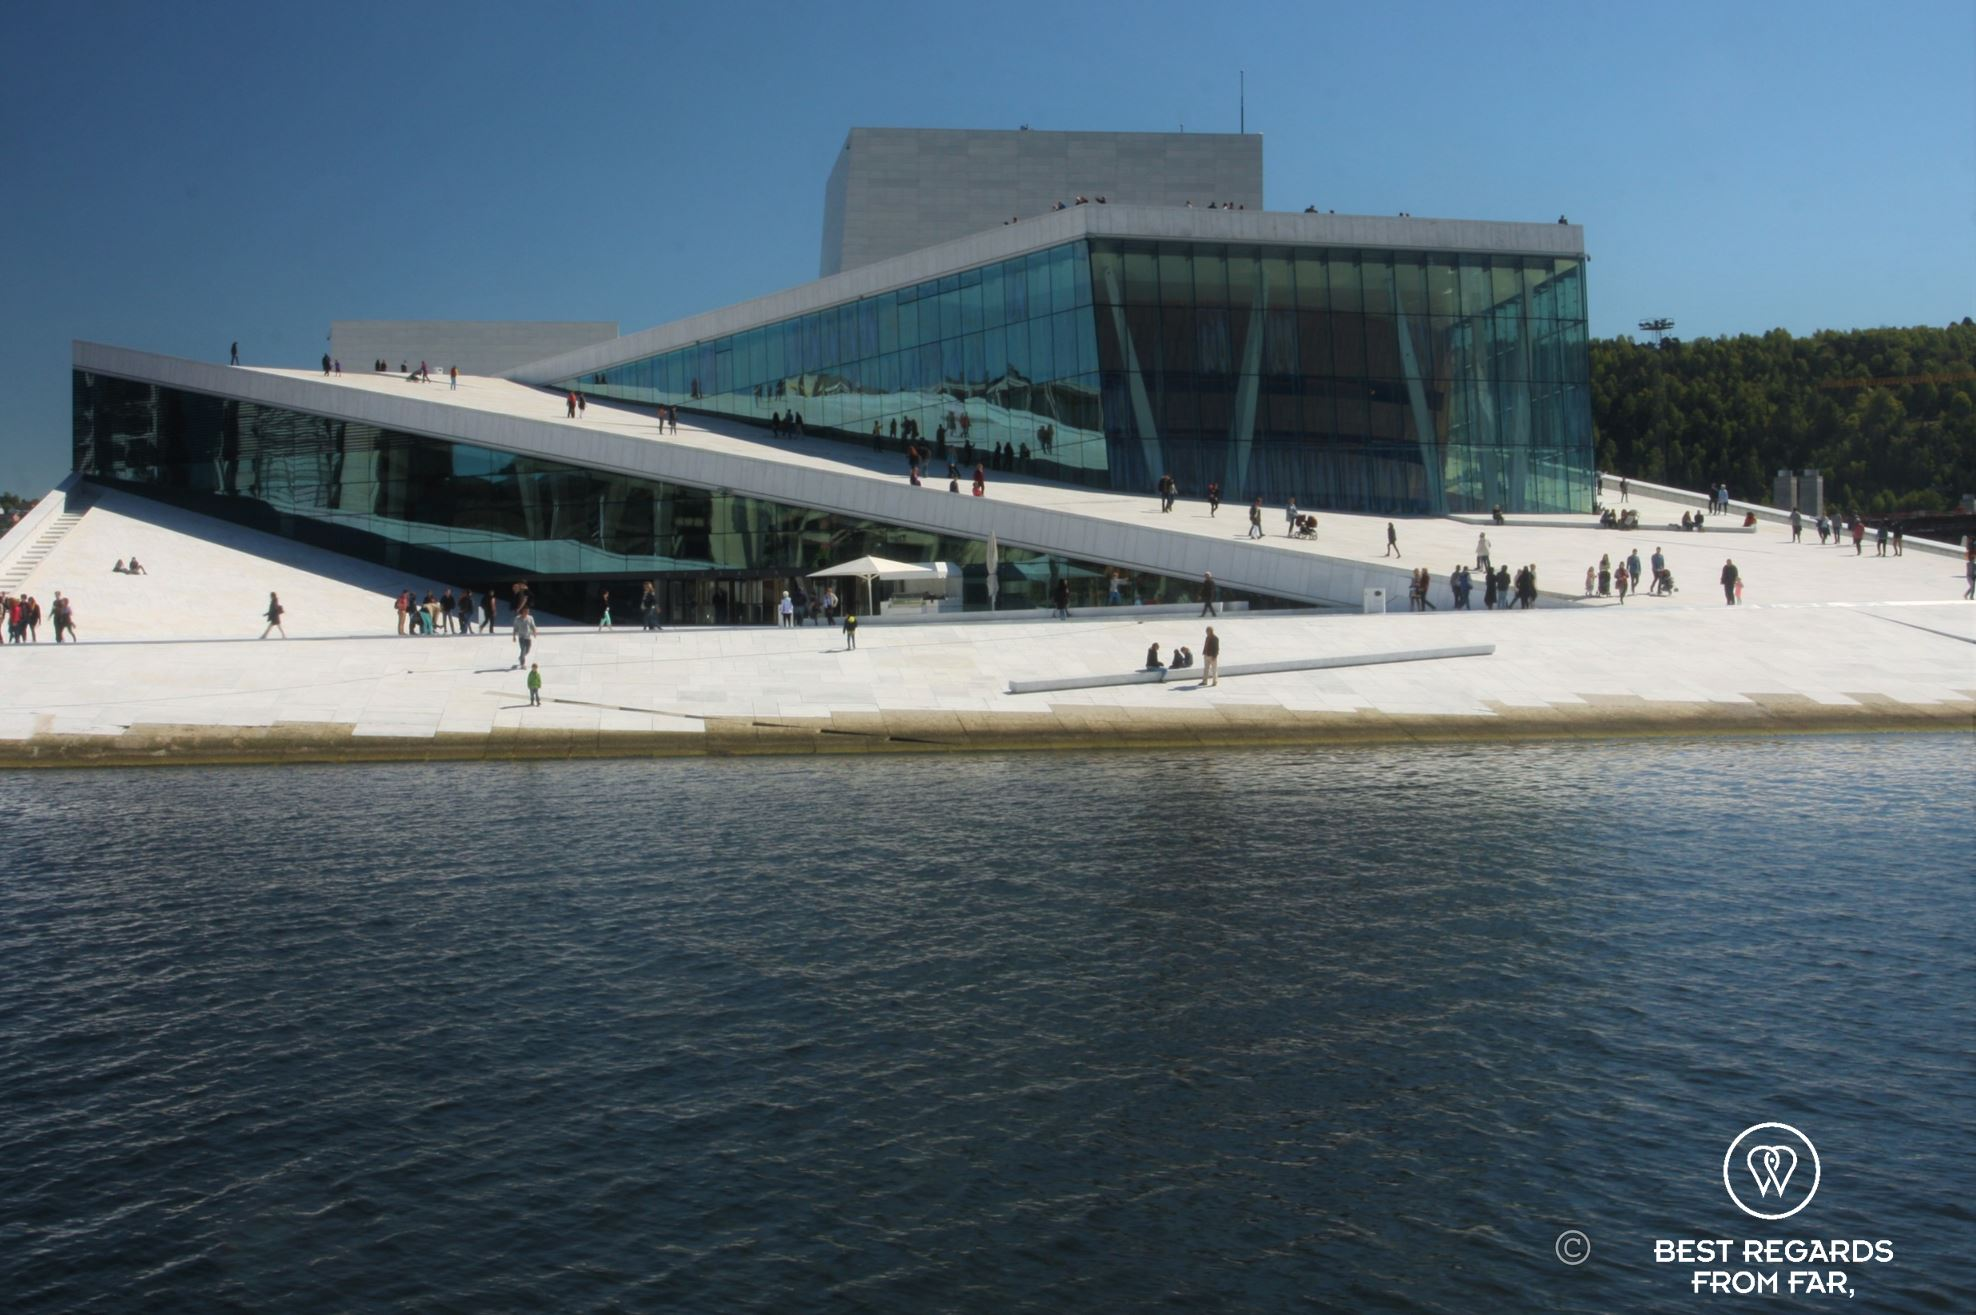 Modern building of the Oslo Opera House, white marble rising out of the water with people walking on its roof.